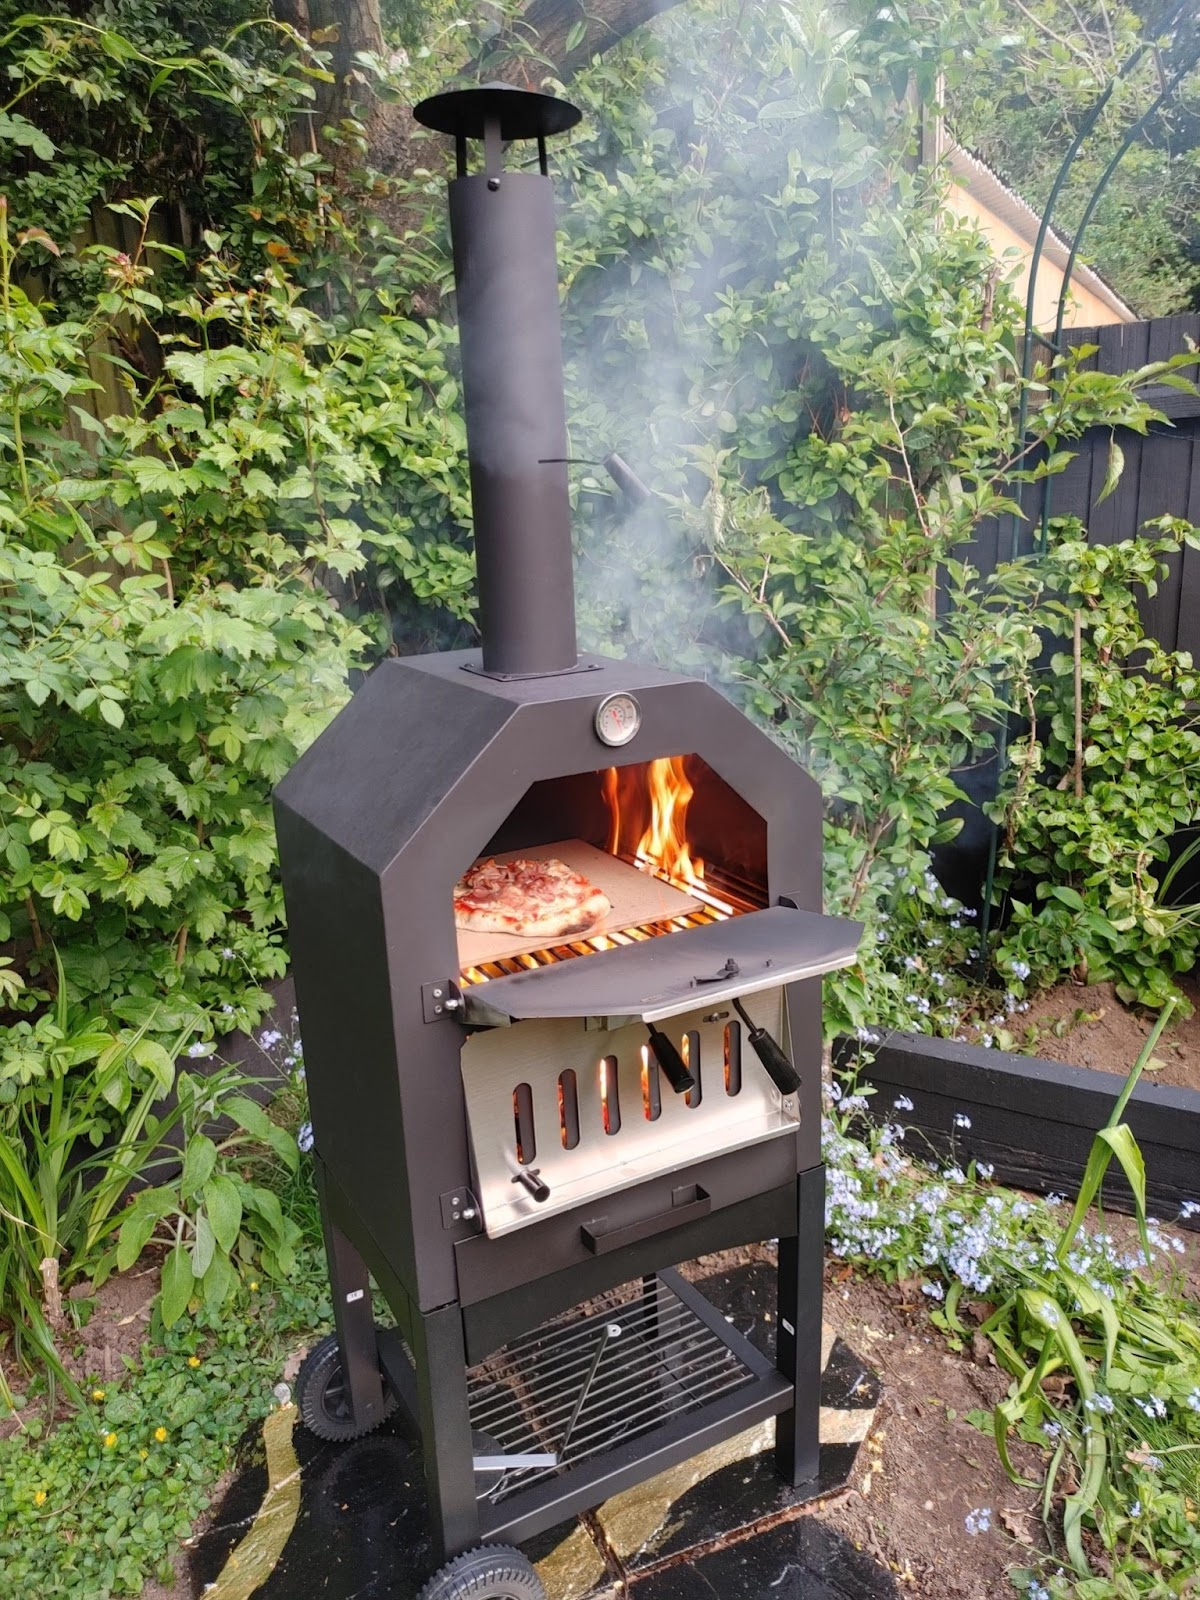 Pizza oven from Outsunny